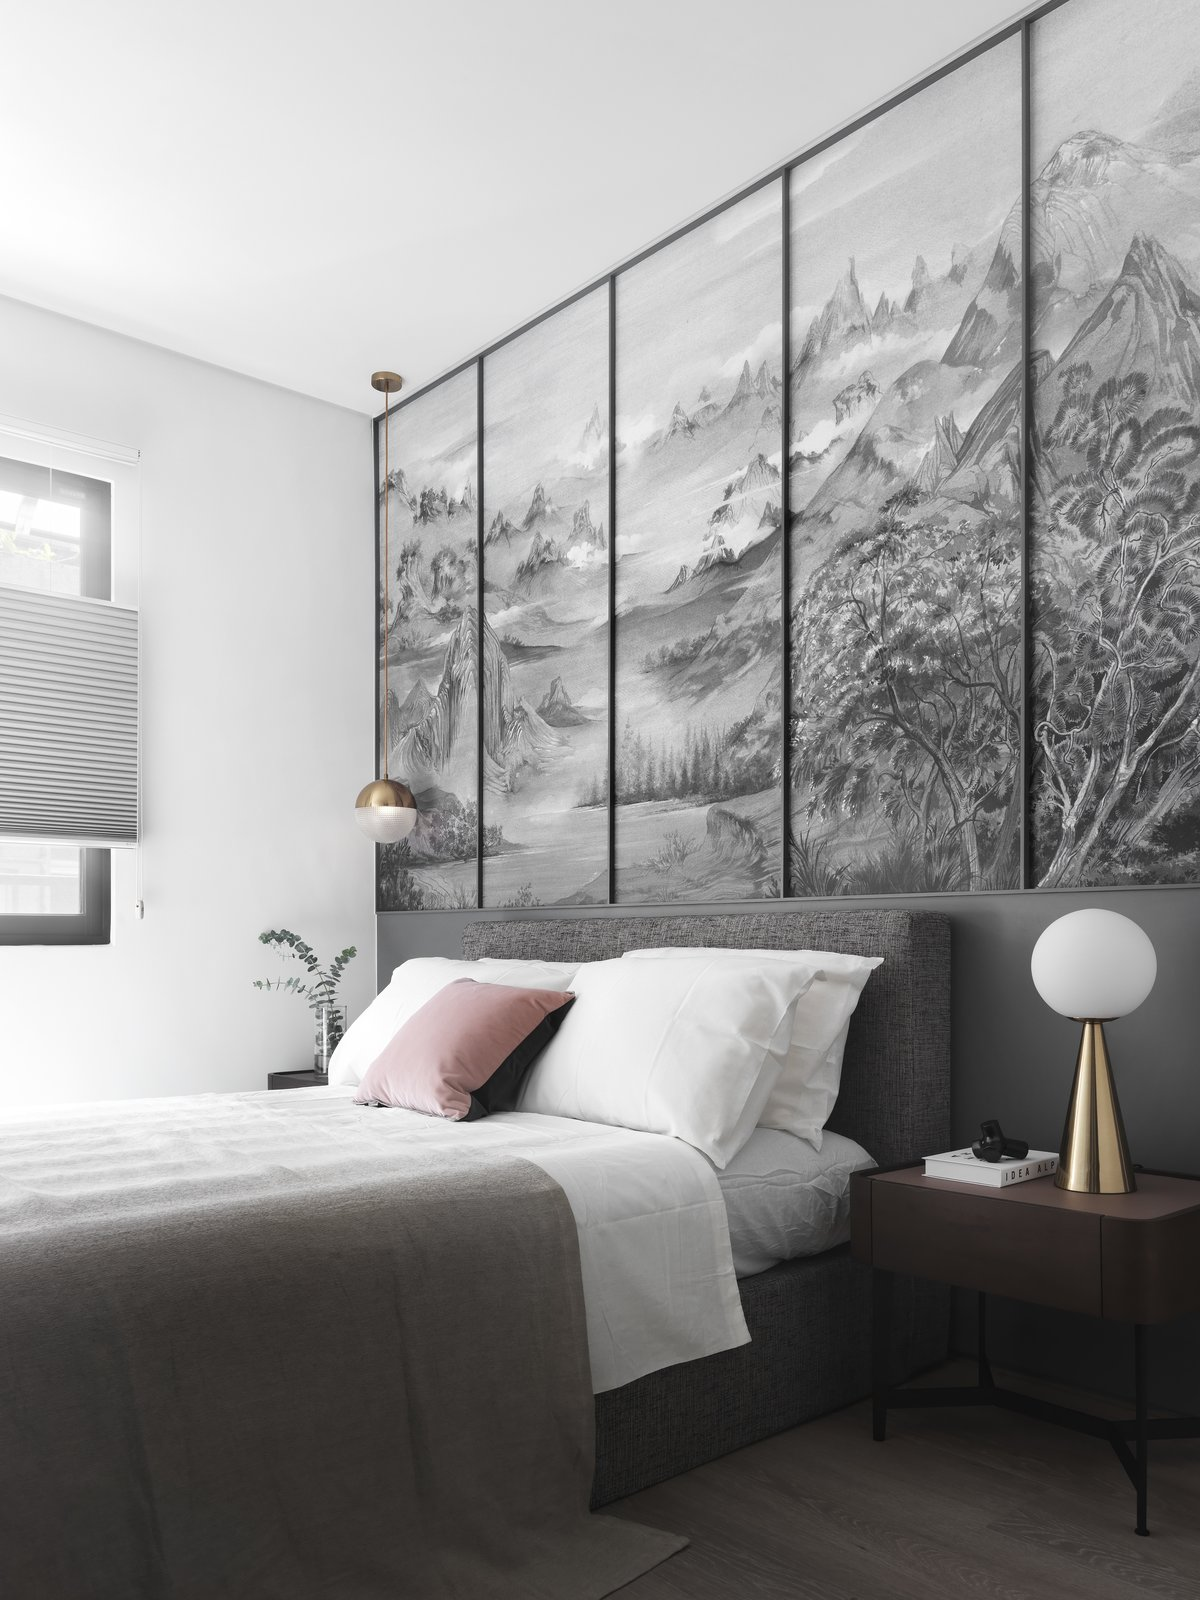 Bedroom, Ceiling Lighting, Light Hardwood Floor, and Bed  The Invisible Order of Daily Life